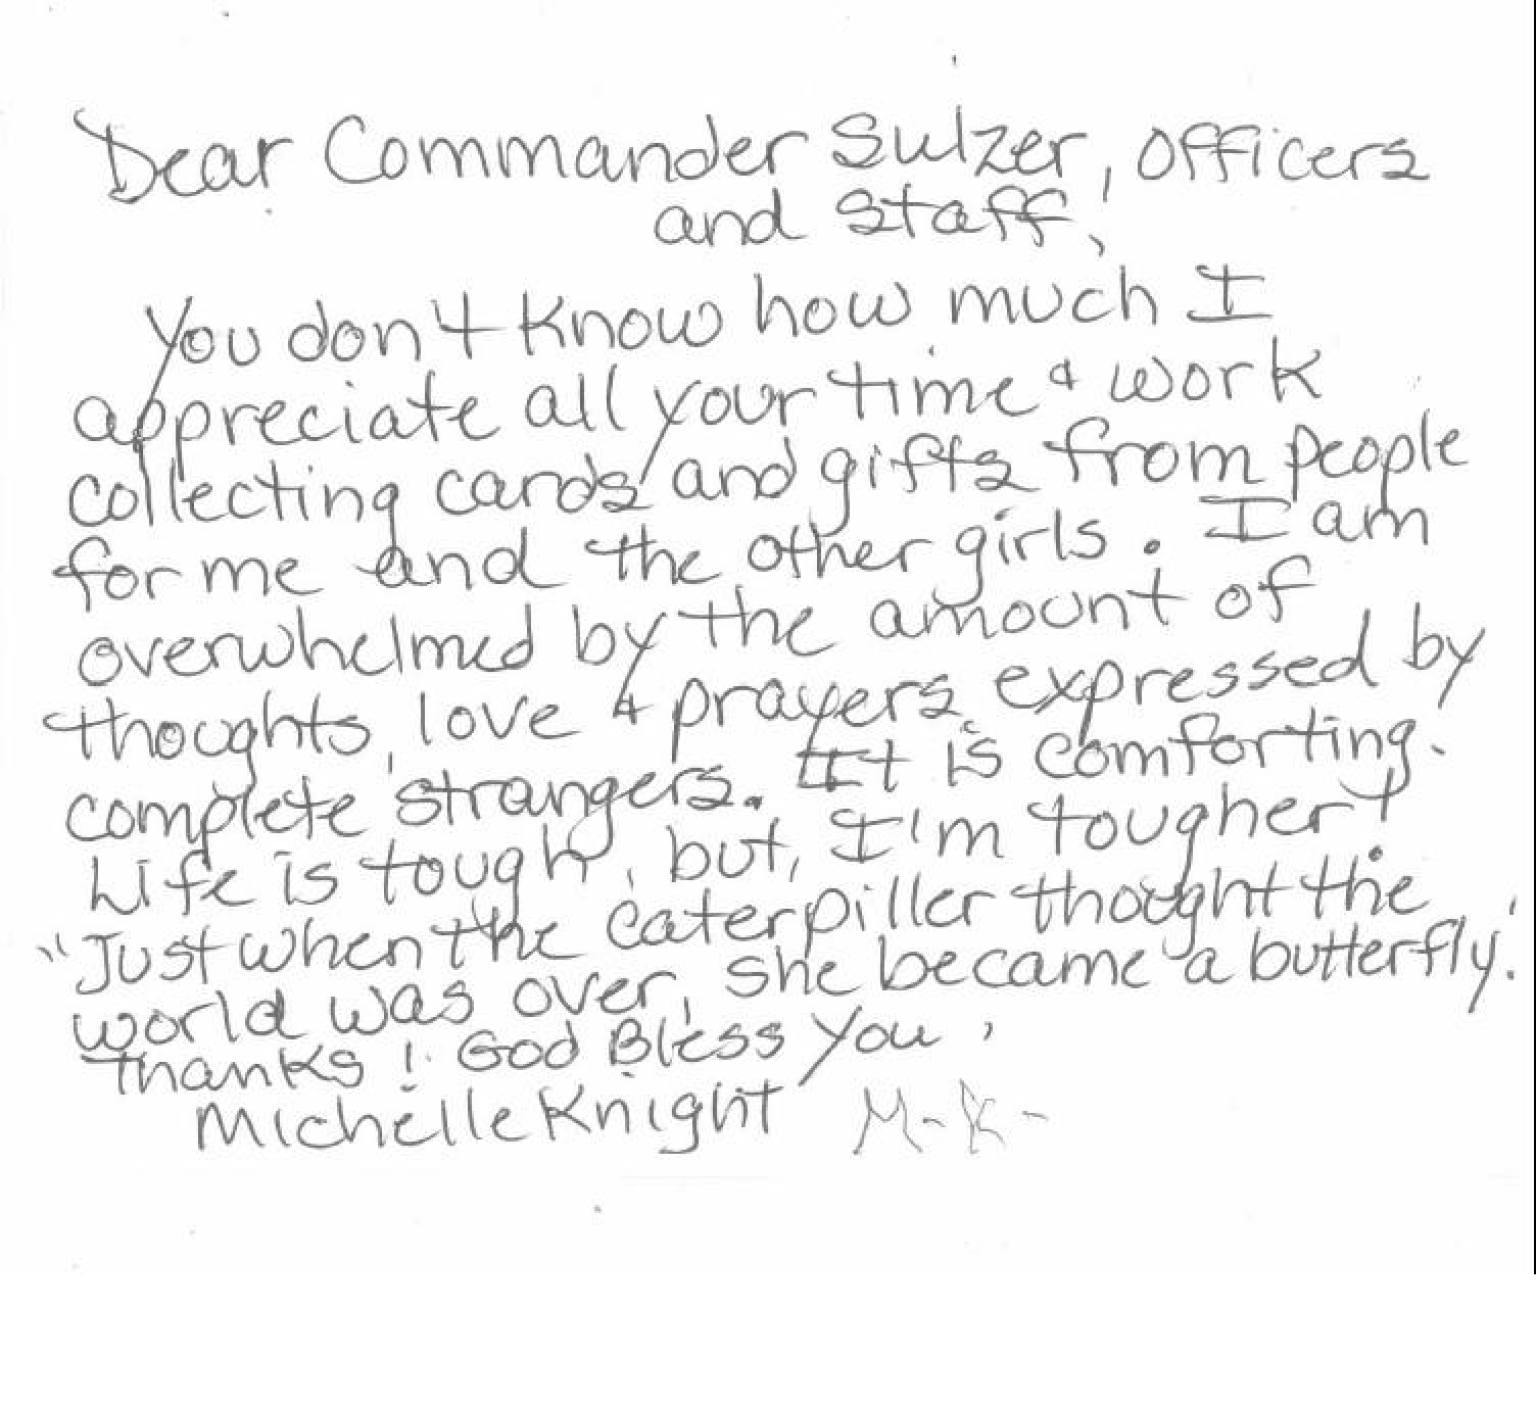 Michelle knights heartfelt note to cleveland police and other thank michelle knights heartfelt note to cleveland police and other thank you notes to cops photos huffpost altavistaventures Choice Image